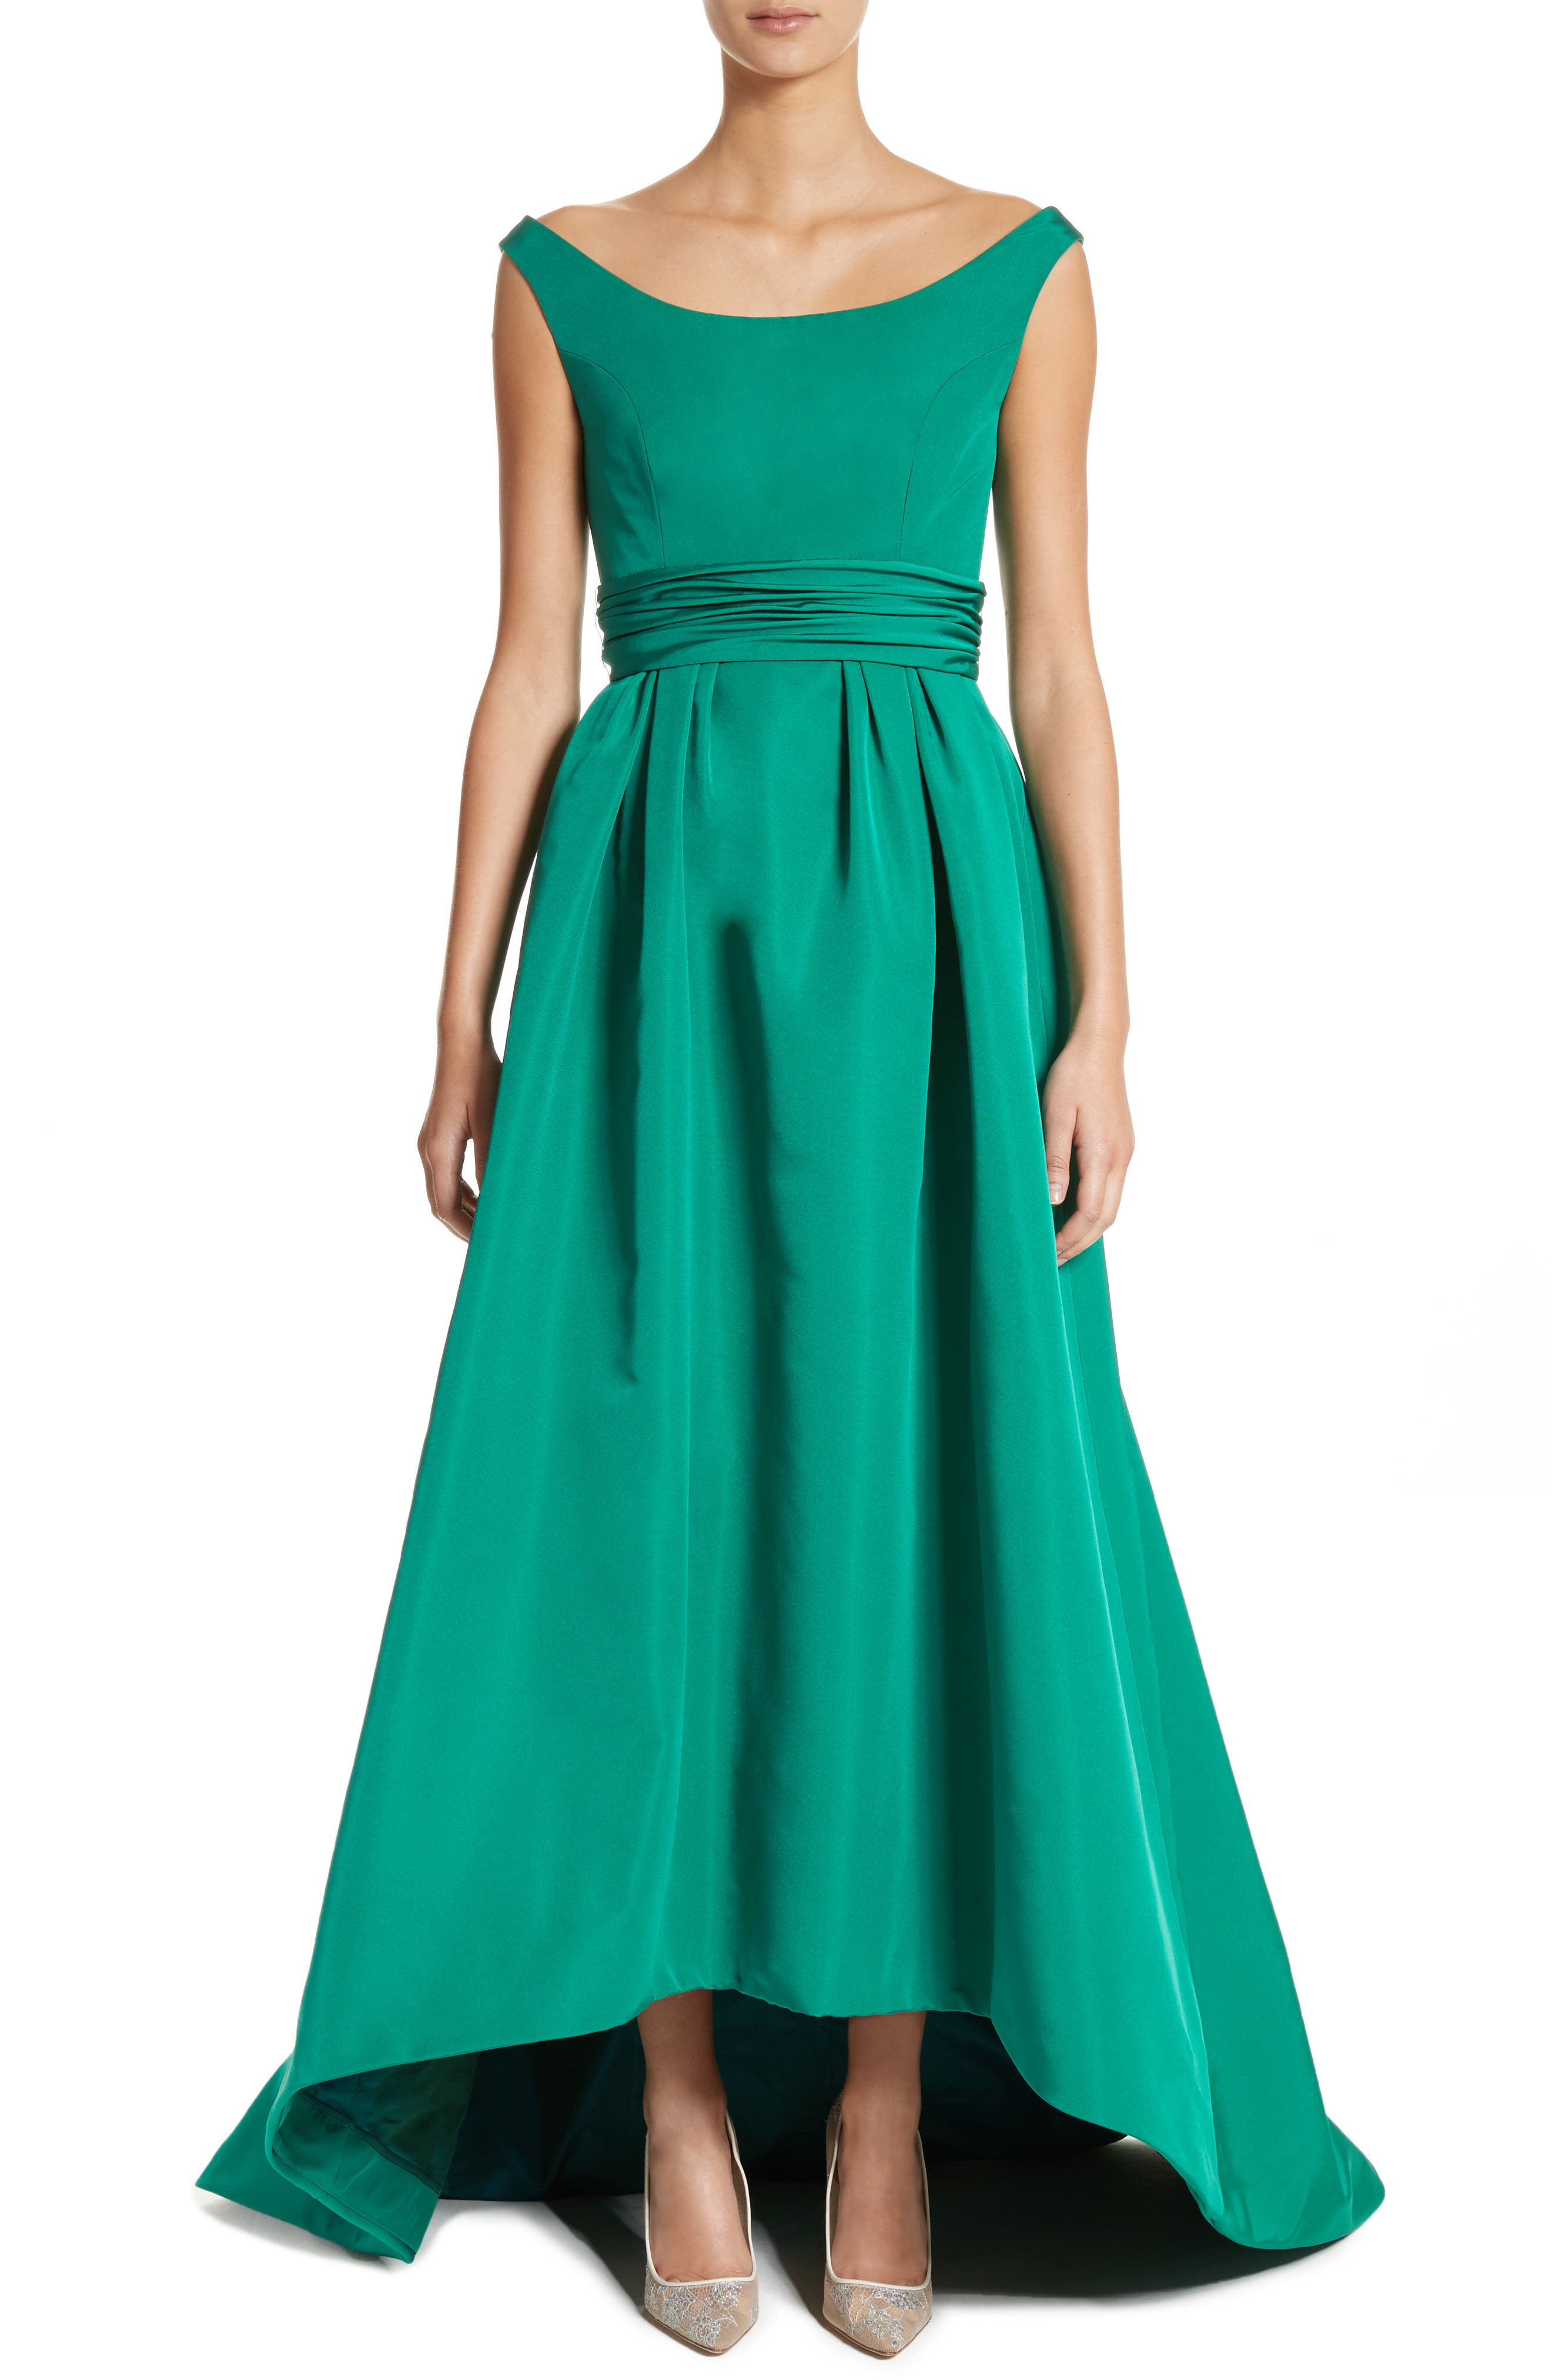 Alternate Image 1 Selected - Carolina Herrera Off the Shoulder Silk Faille Gown